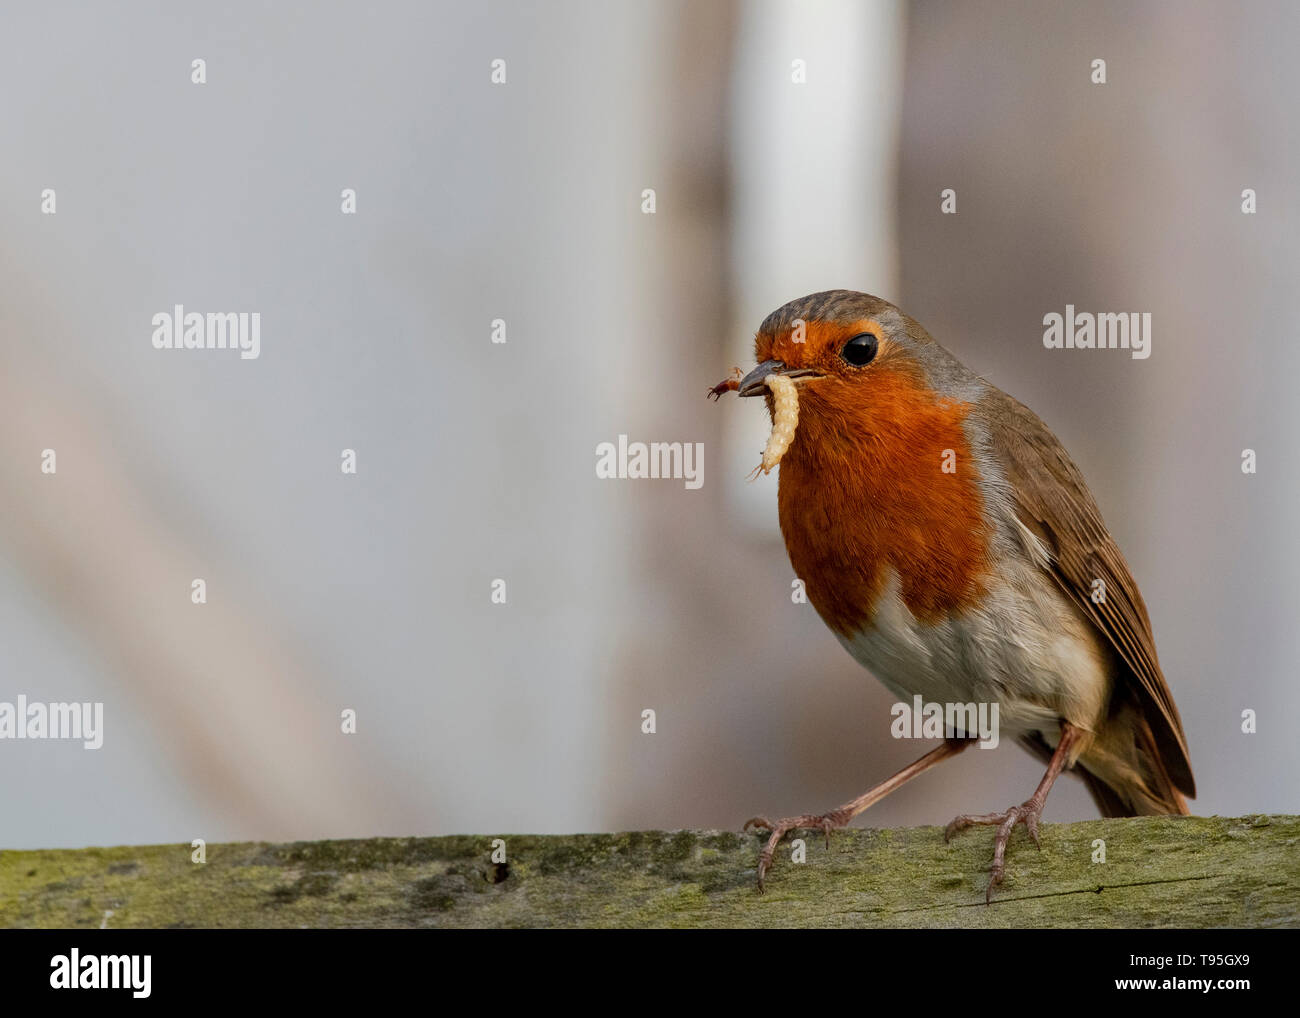 Robin on fence with worm in beaks - Stock Image